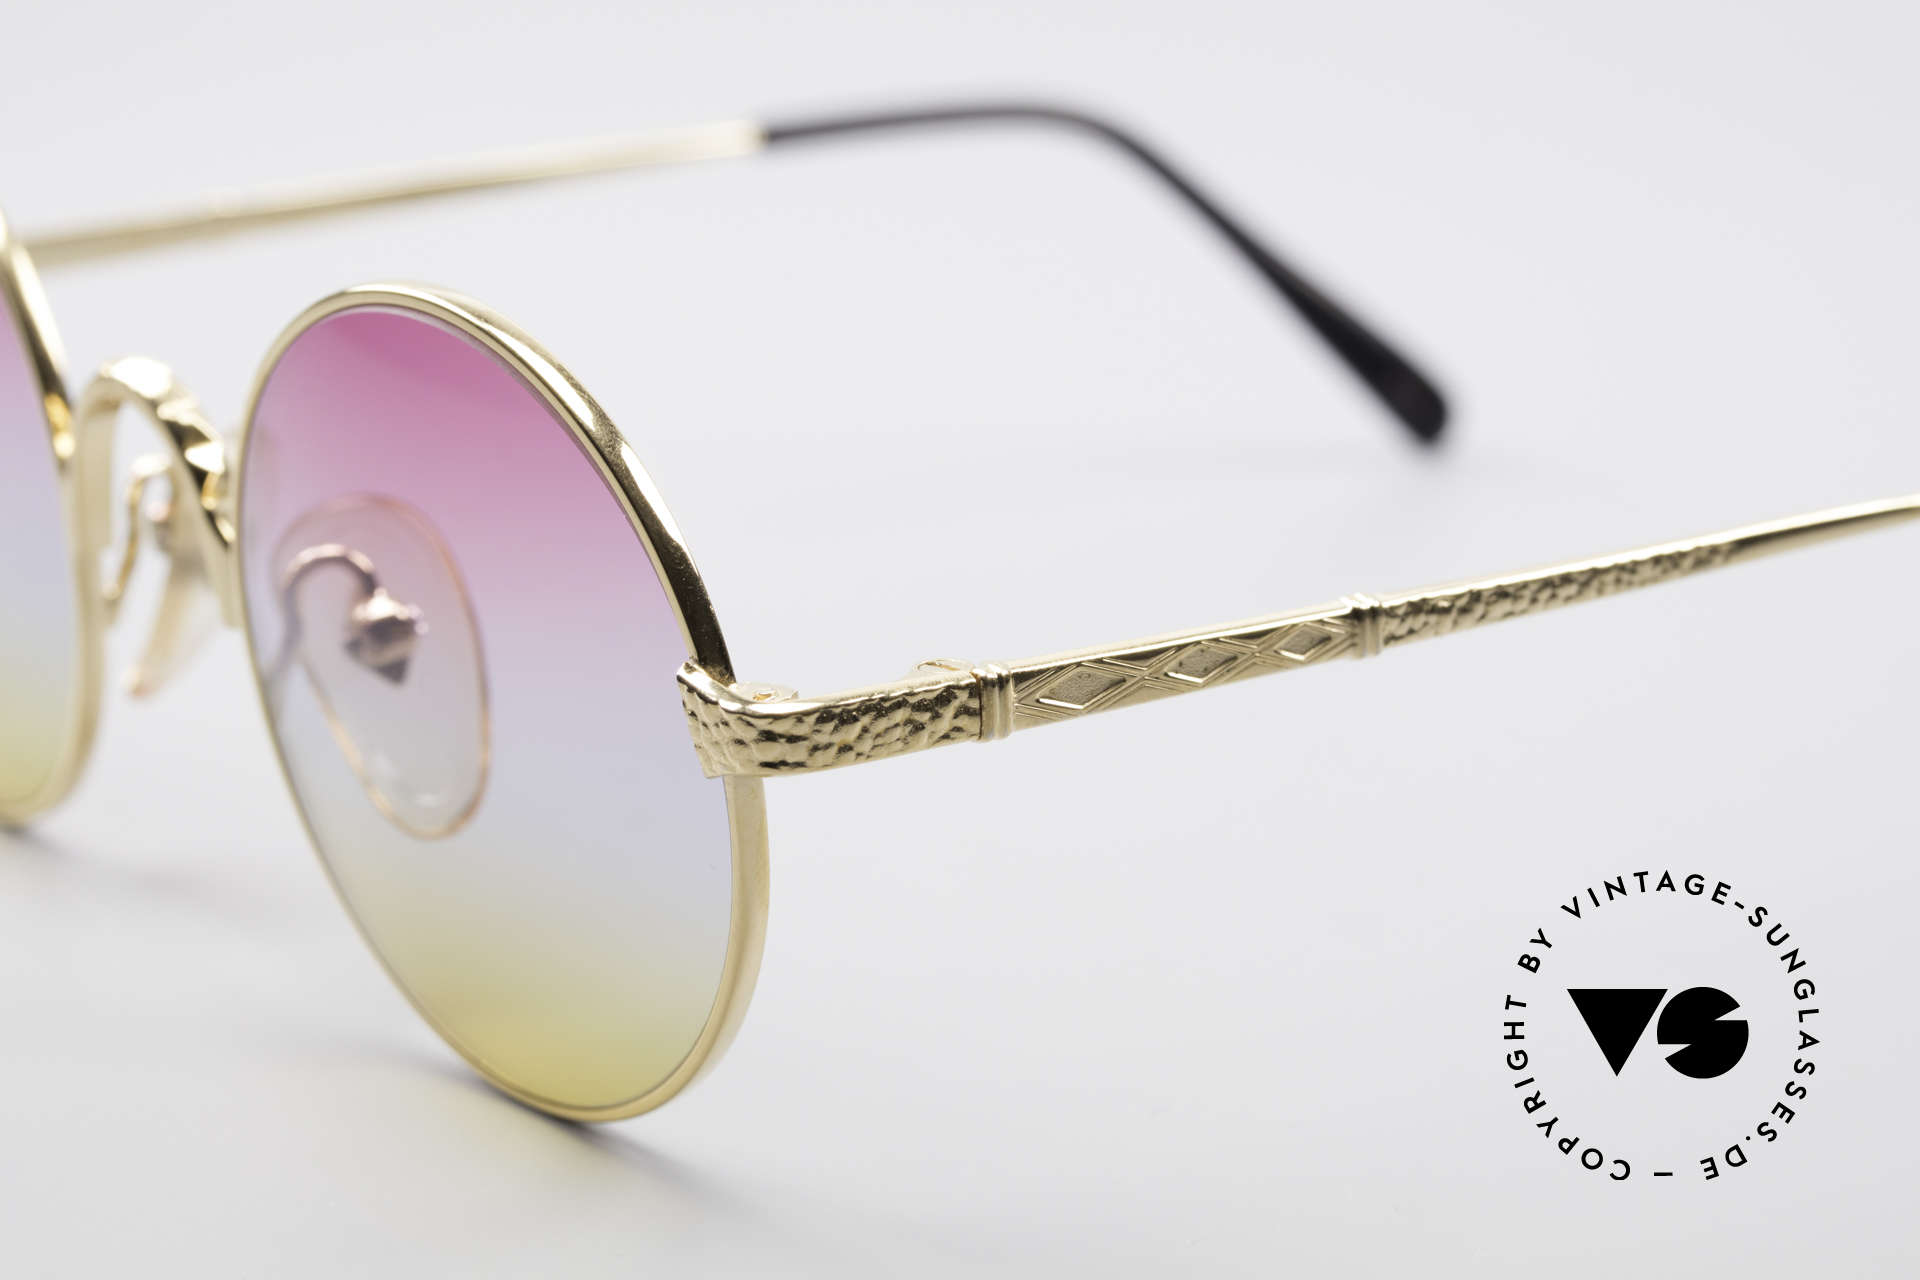 Jean Paul Gaultier 55-9671 Gold Plated Round Frame, a true designer piece in an unworn condition, Made for Men and Women